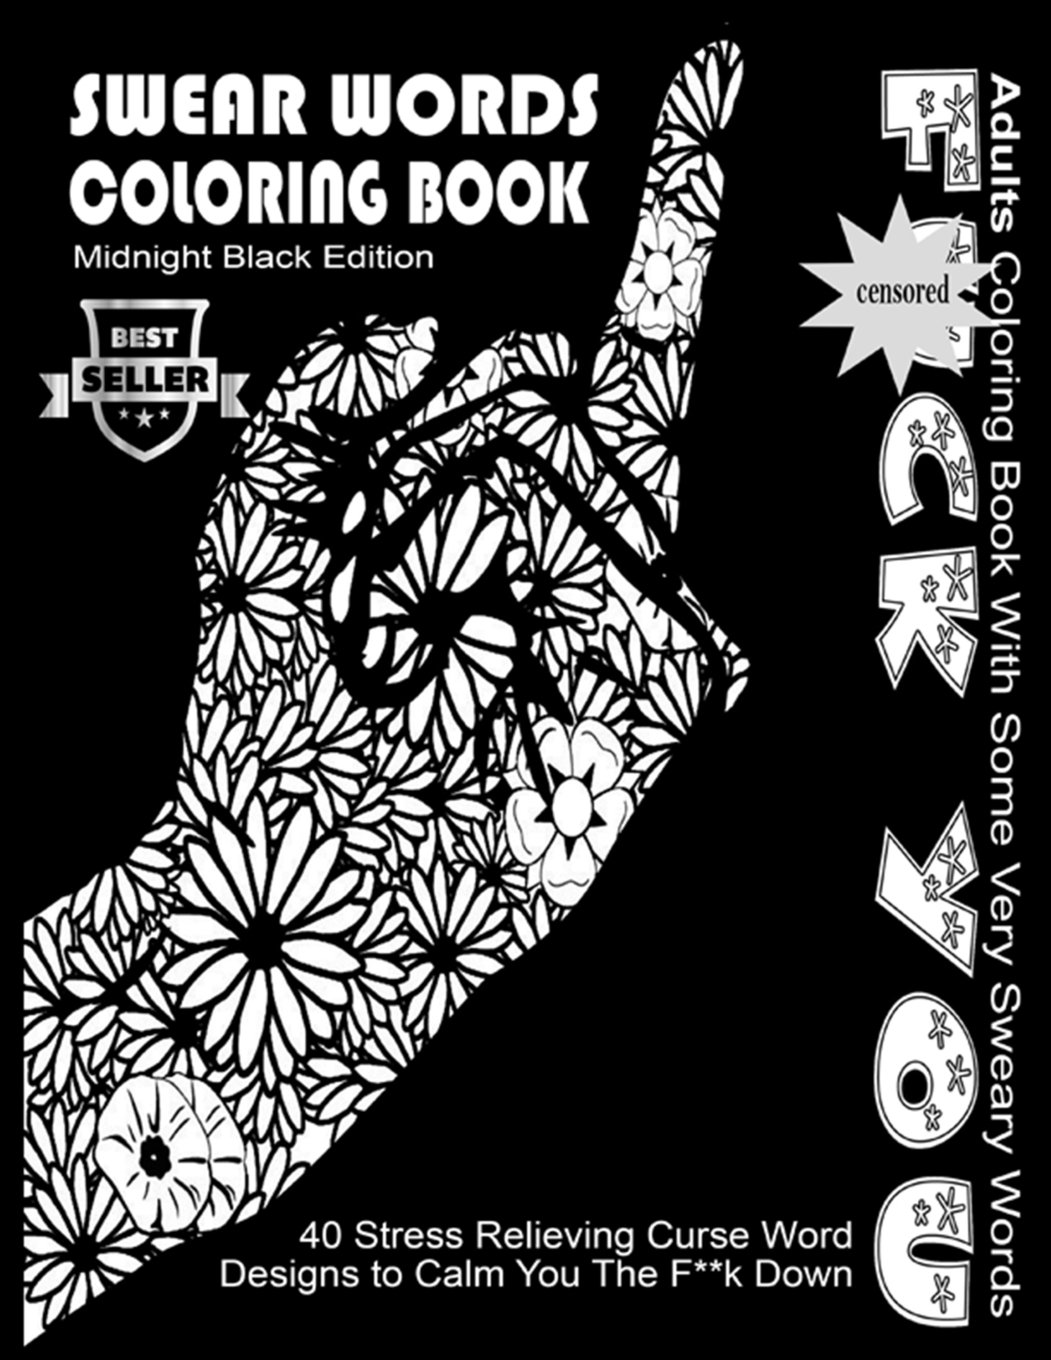 Bad word coloring pages - Amazon Com 5 Swear Word Coloring Book Midnight Black Edition Best Seller Adults Coloring Book With Some Very Sweary Words 40 Stress Relieving Curse